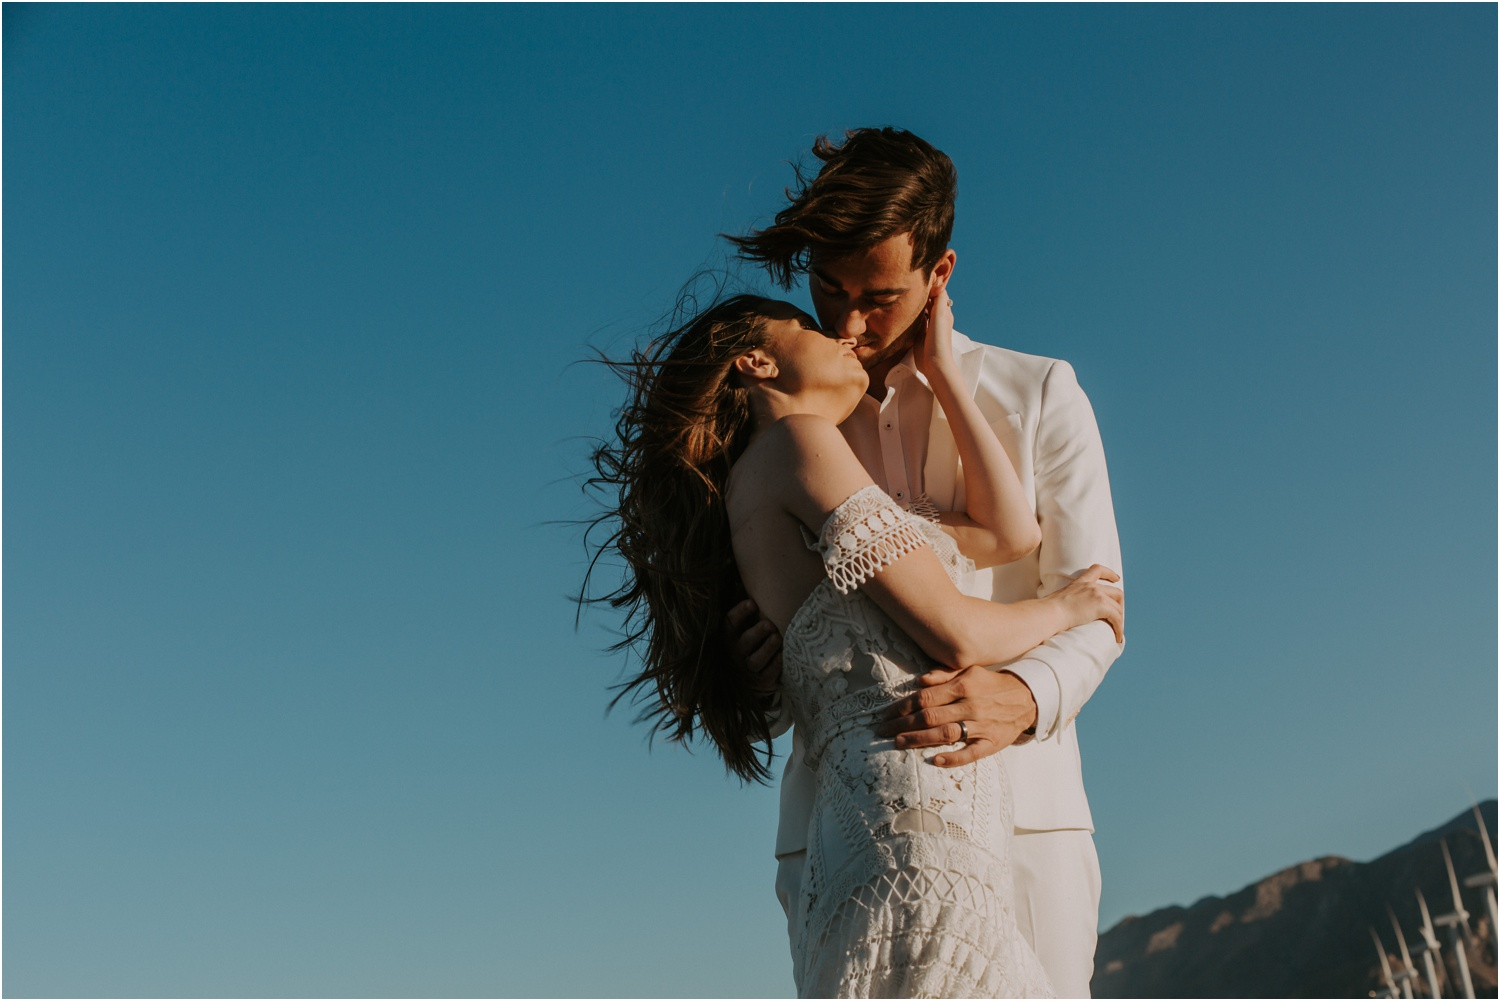 Palm Springs Elopement | Stephanie + Nick | Courtney Jess Photography | Kimberley British Columbia Elopement Photographer